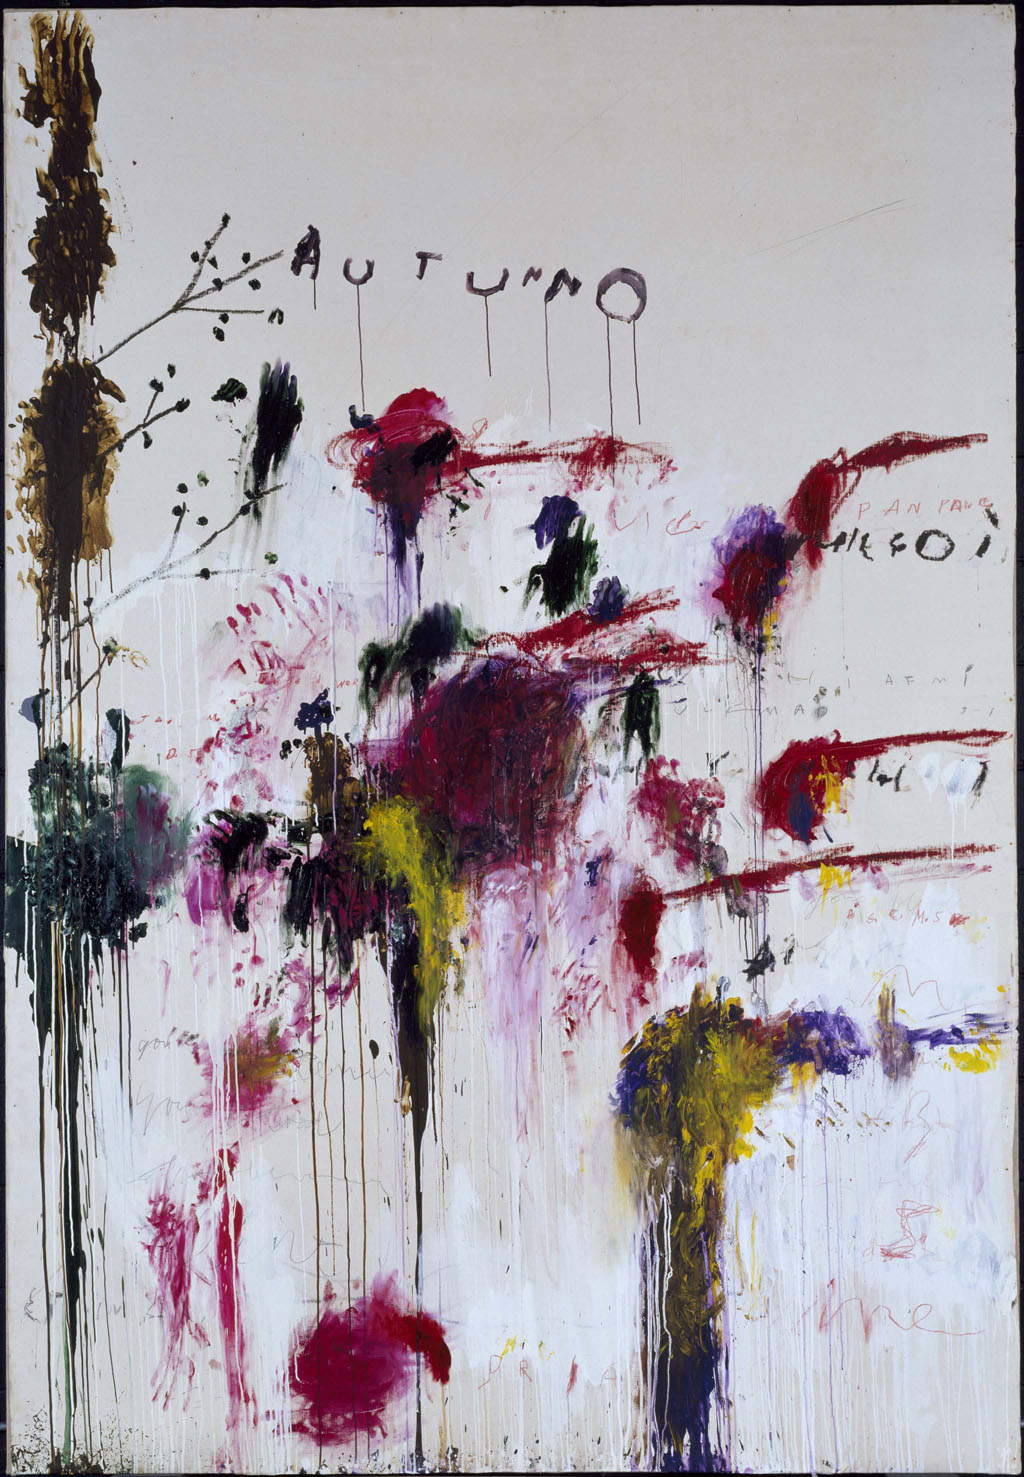 Cy Twombly - Quattro Stagioni: Autunno - 1993-95 - © Cy Twombly